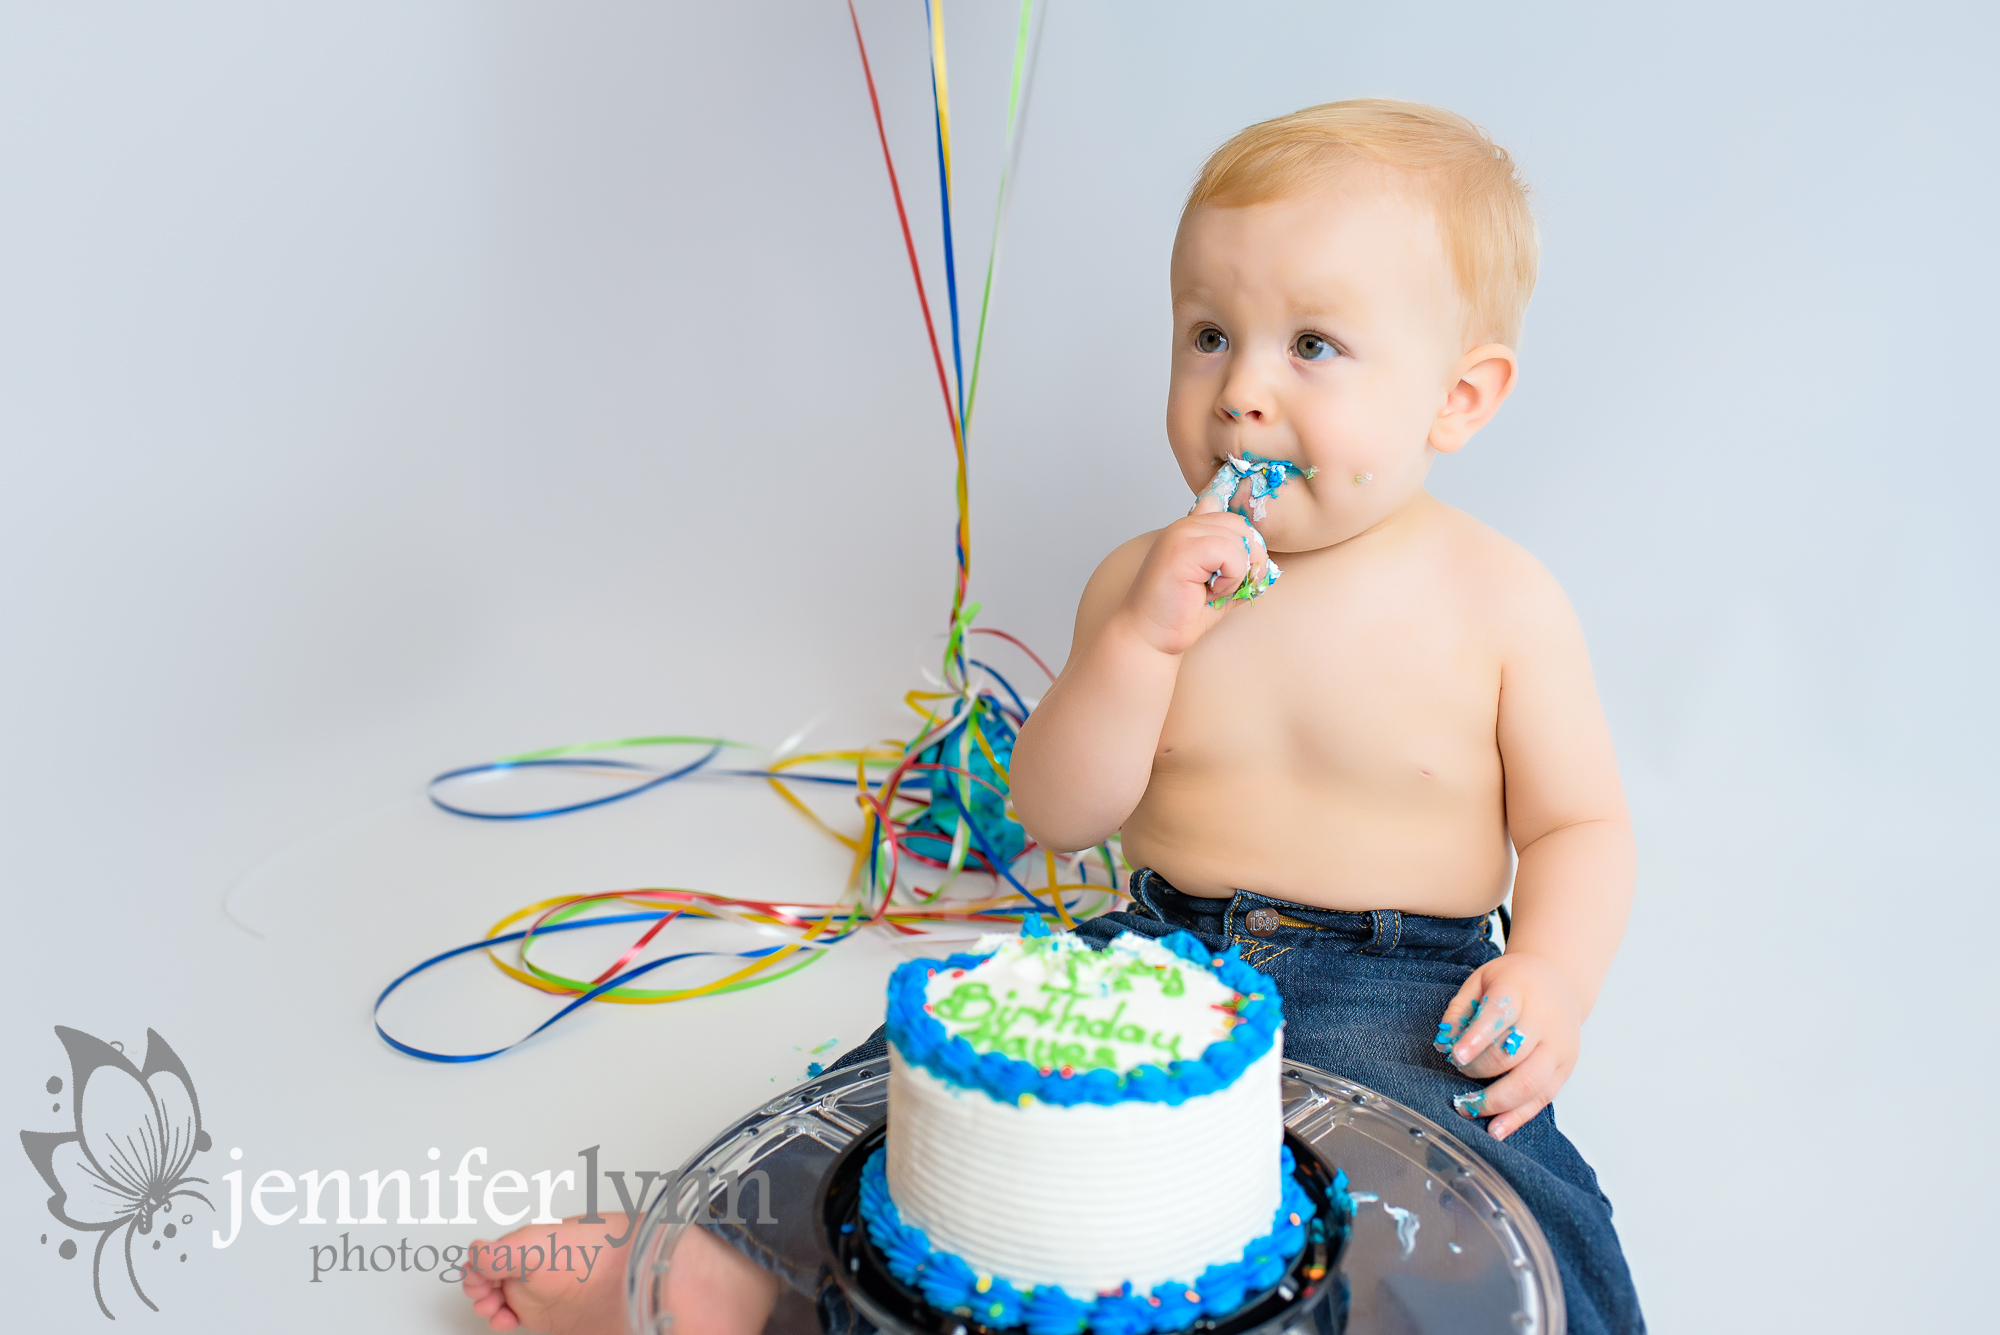 Baby Boy Eating Icing Birthday Session